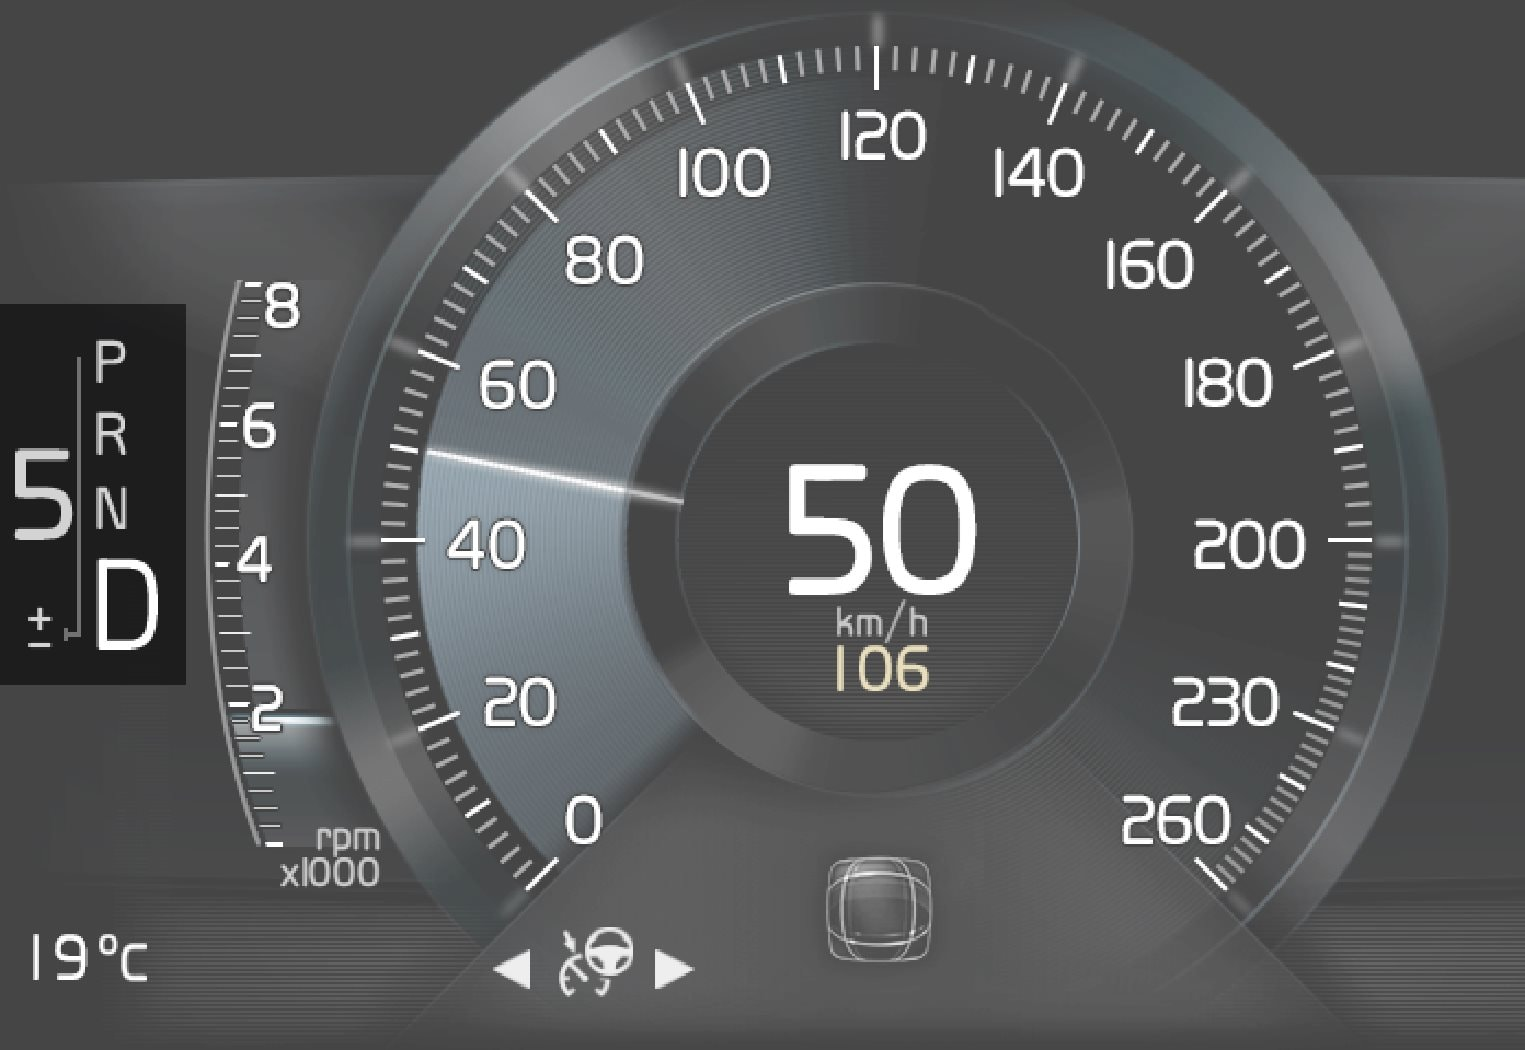 Gear shift indicator in the 8-inch driver display.